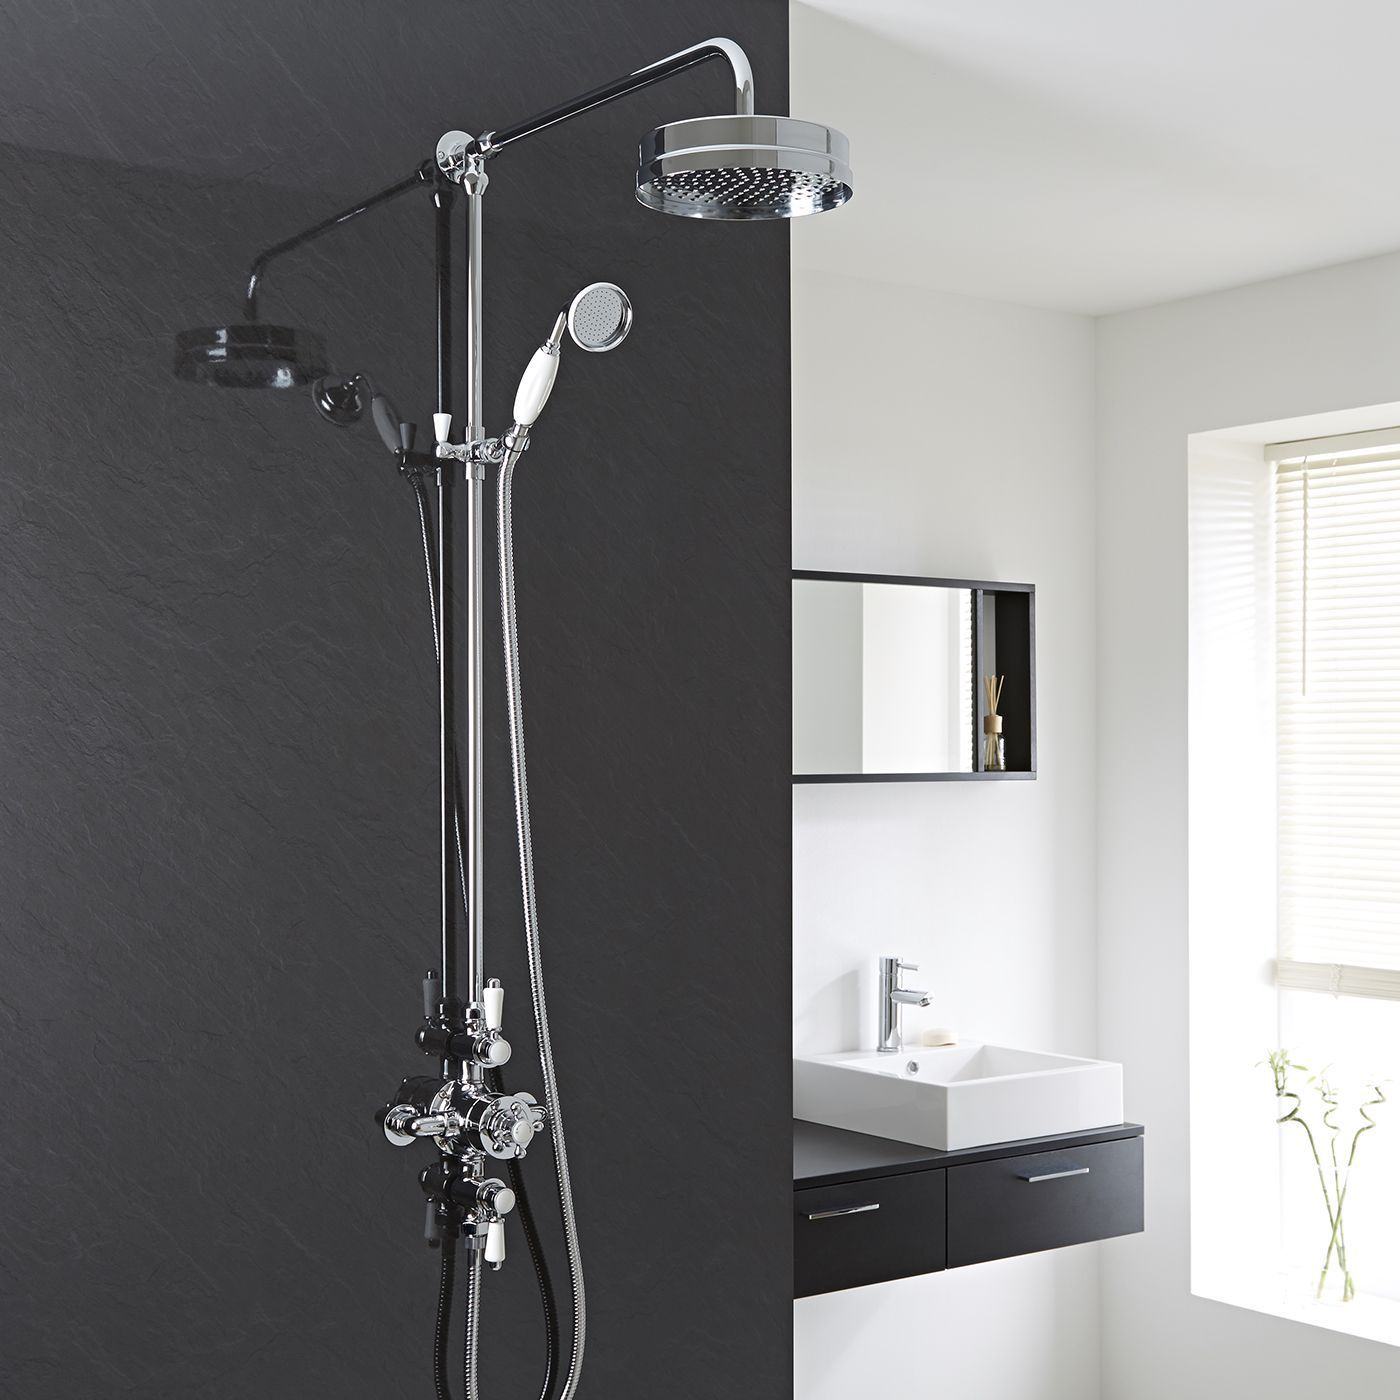 Traditional Triple Exposed Thermostatic Shower Valve with Luxury Rigid Riser